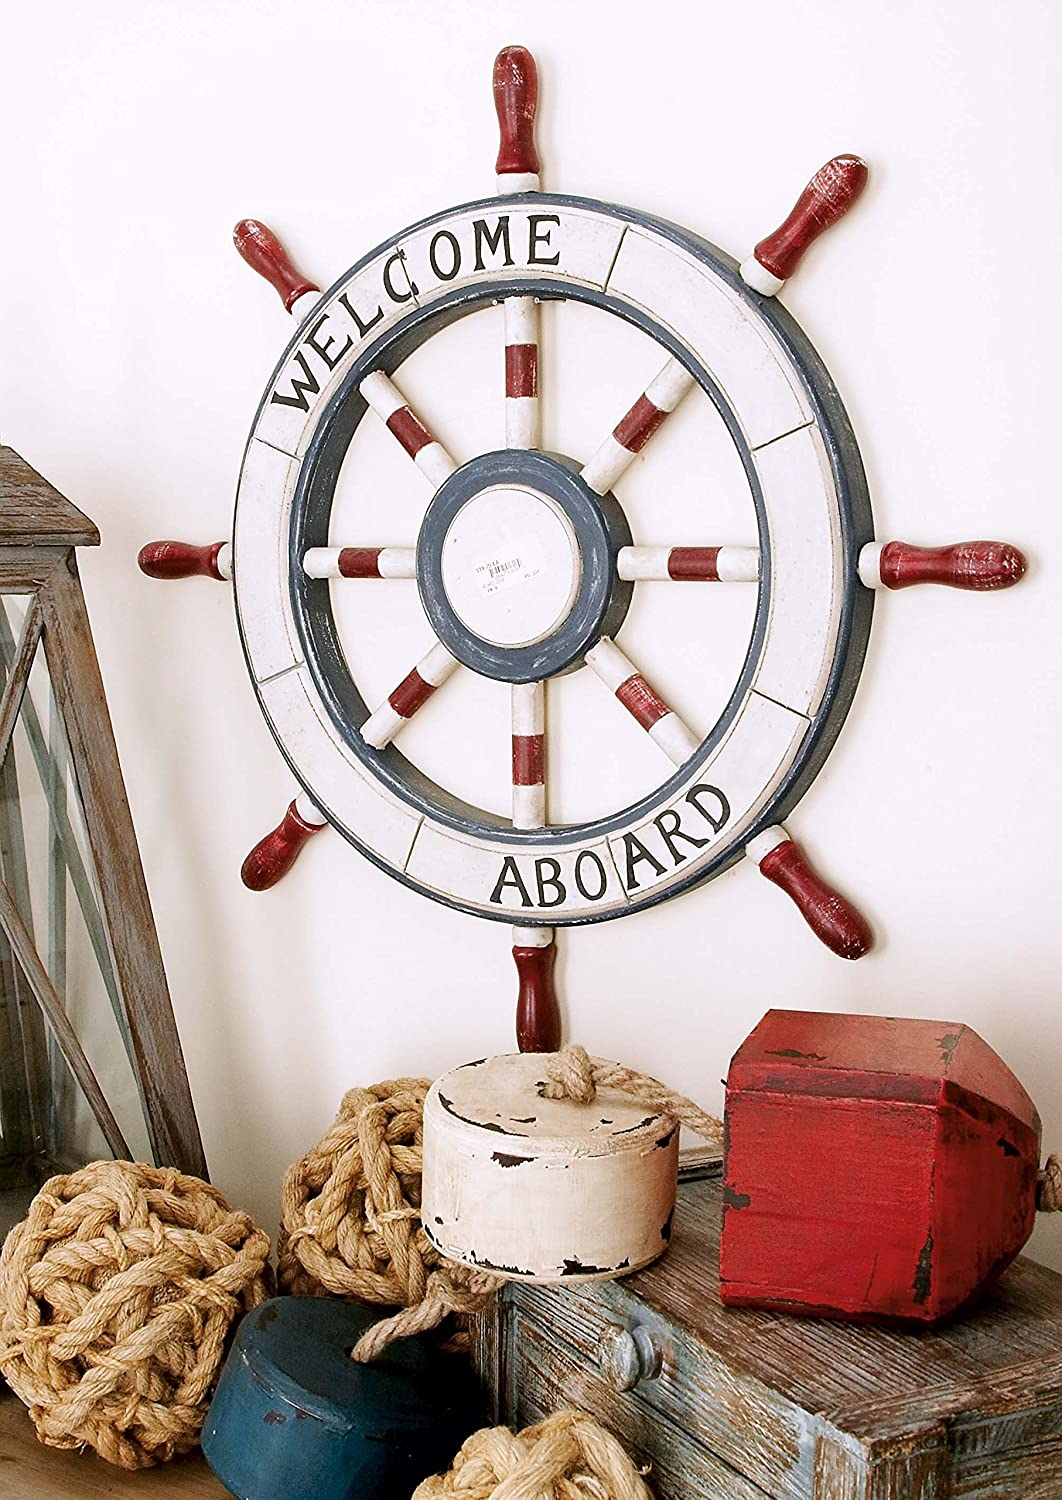 Welcome aboard boat ships life ring clock - Welcome Aboard Boat Ships Life Ring Clock 25